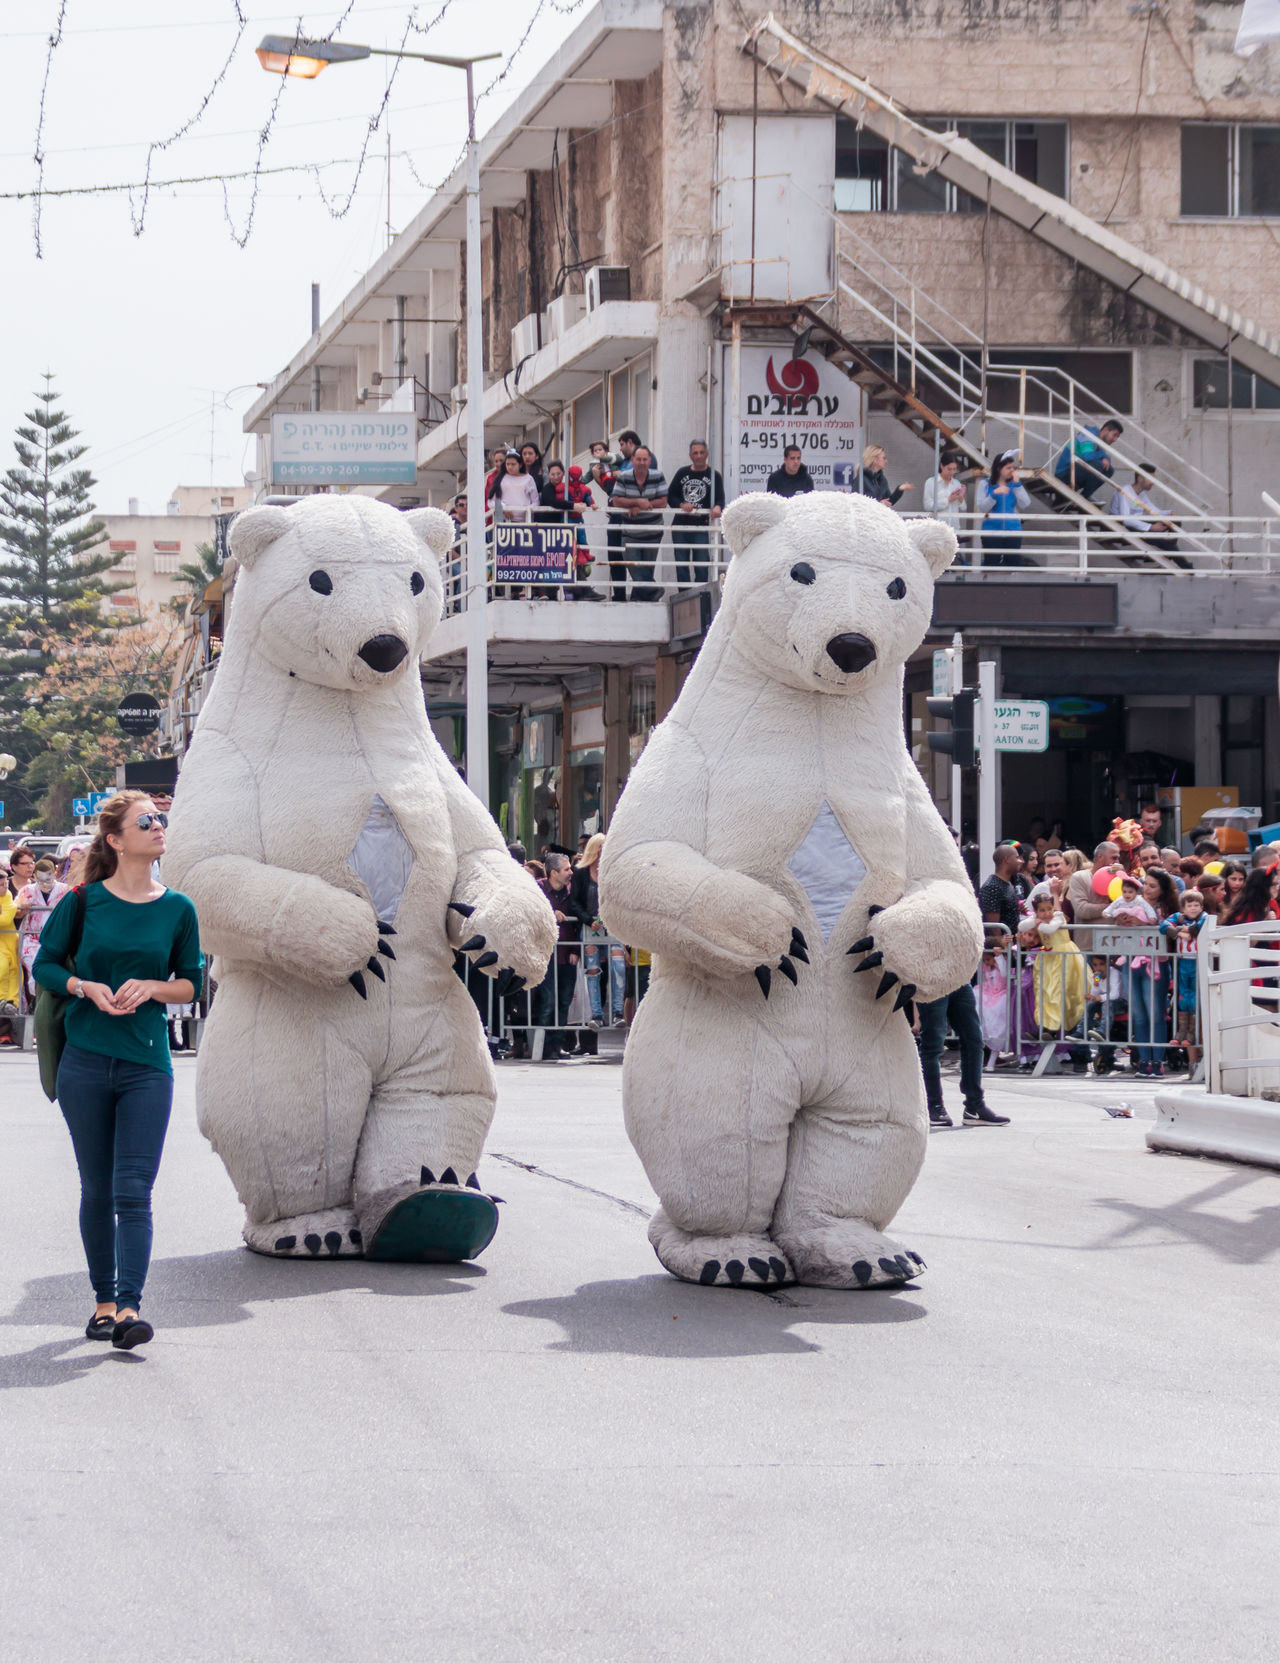 "Nahariyya, Israel, March 10, 2017 : Participants in the traditional annual carnival parade ""Adloyada"" dressed in the big suit of white bears going near the viewers in Nahariyya, Israel Adloyada Adult Beauty Carnival Celebration Colorful Costume Culture Day Decoration Dressed Entertainment Festival Fun Happy Israel Masquerade Nahariyya Outdoors Parade Party People Style Traditional Travel"